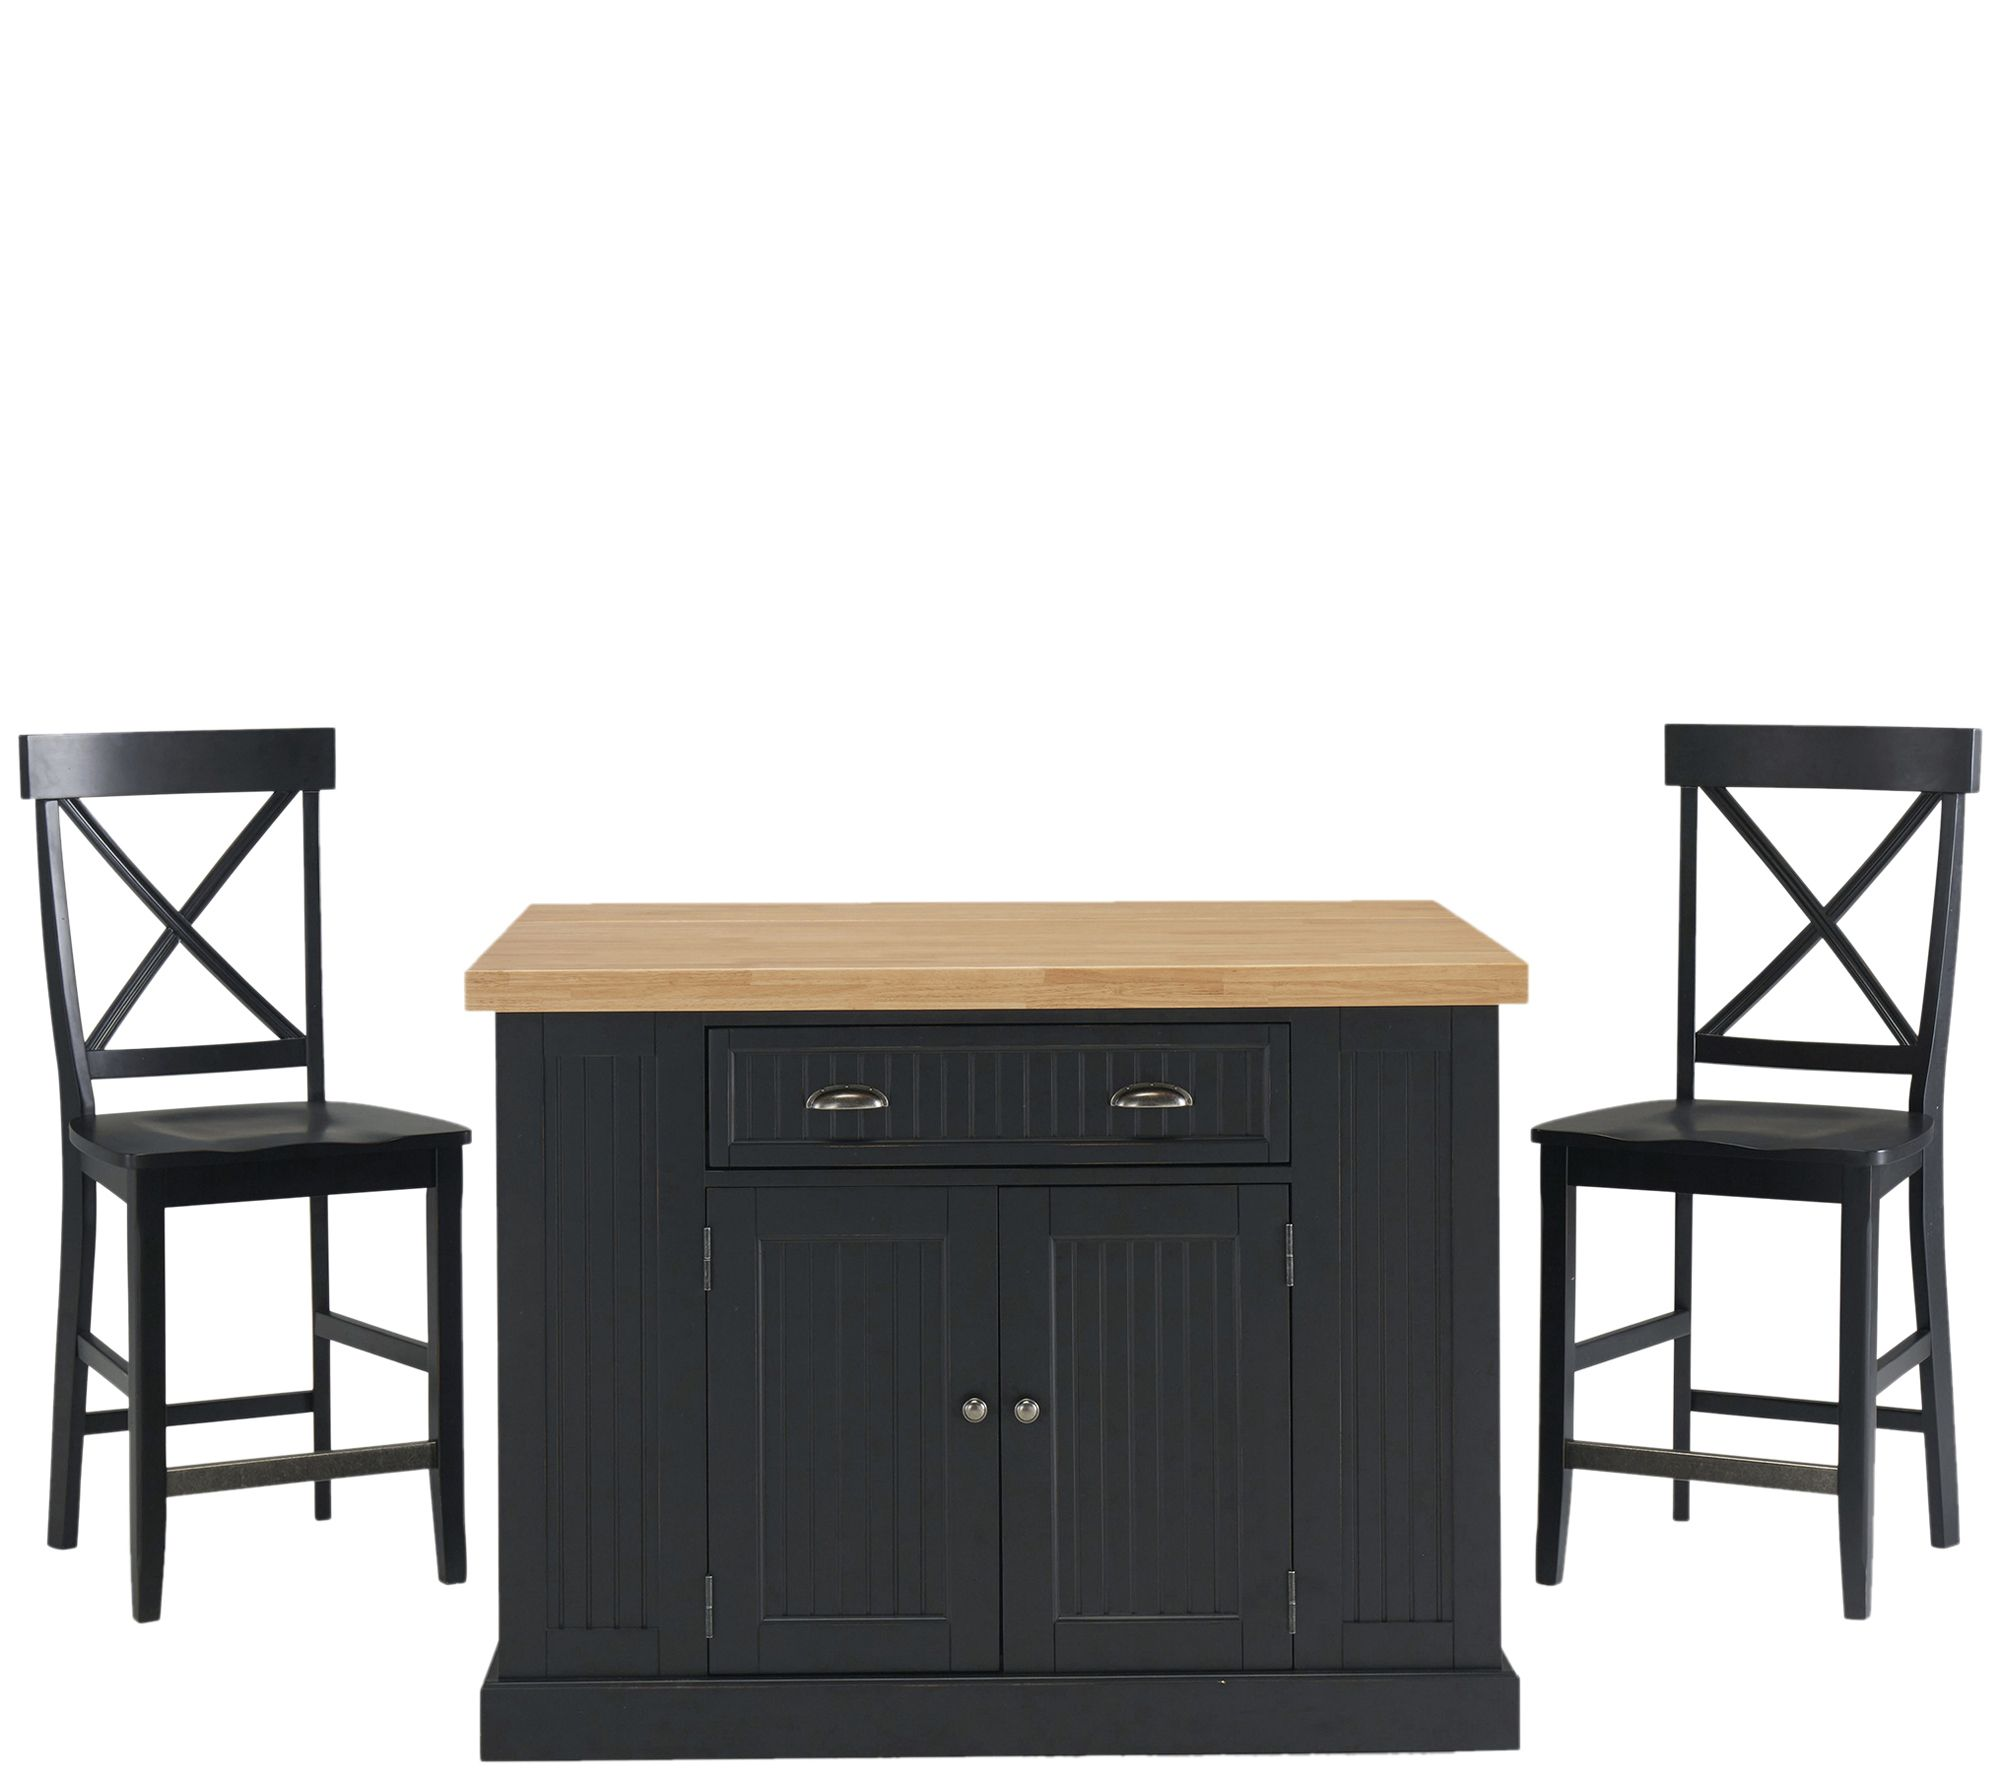 Tremendous Home Styles Nantucket Solid Wood Top Kitchen Island 2 Stools Qvc Com Pabps2019 Chair Design Images Pabps2019Com